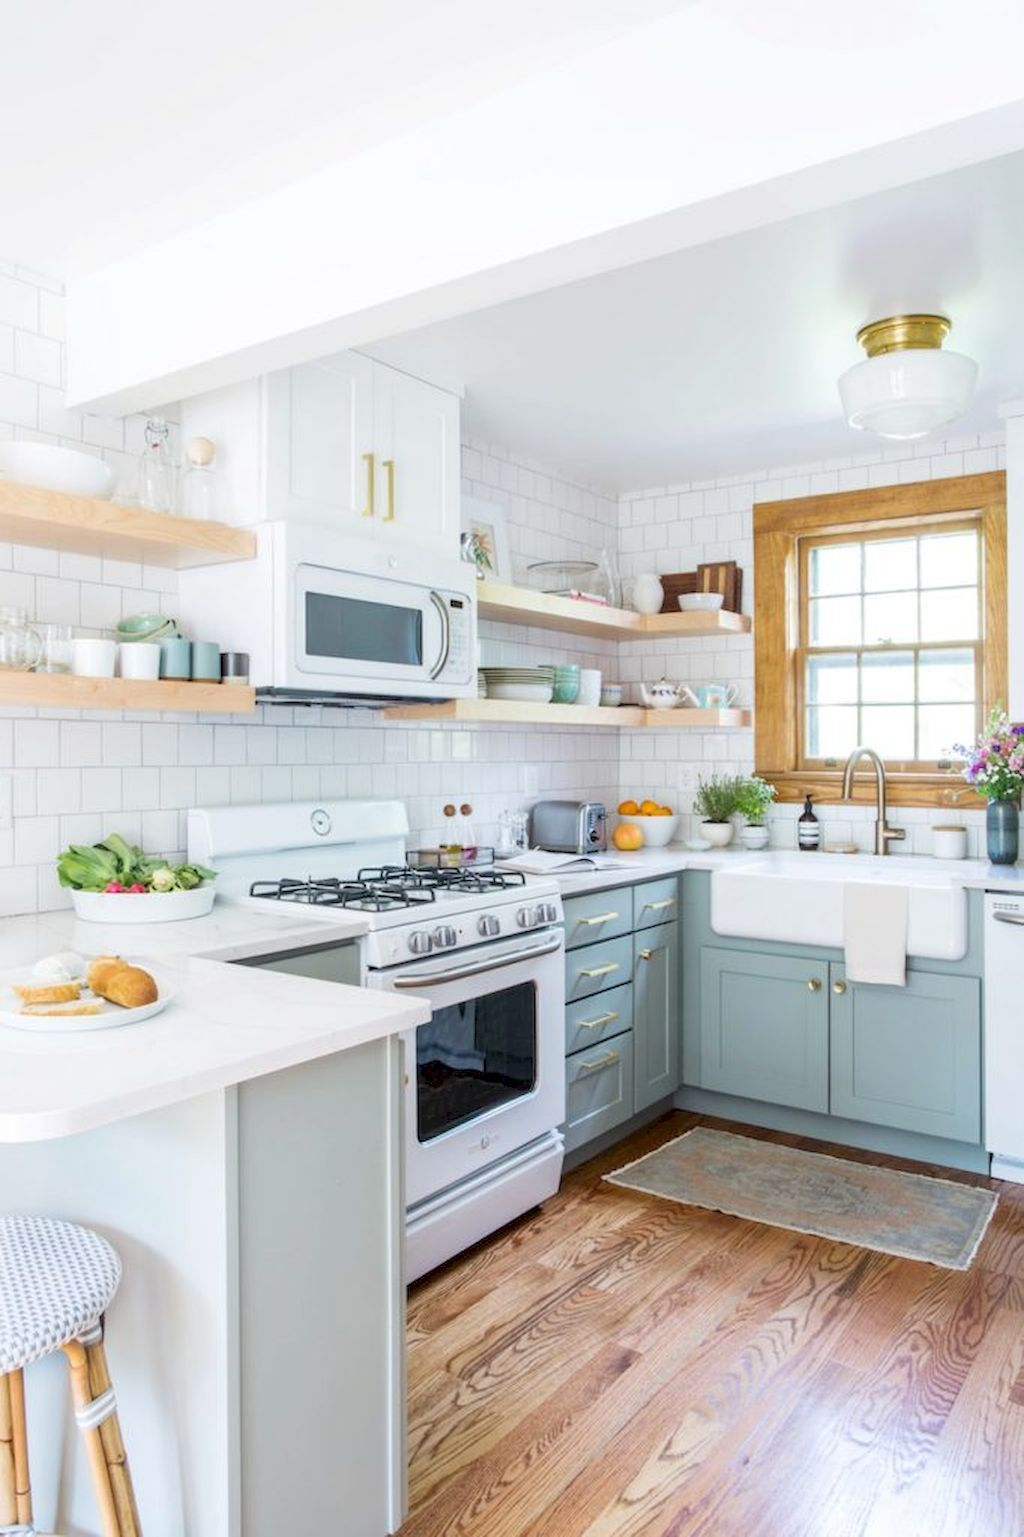 90 Inspirations for Small Kitchen Remodel Ideas on A Budget ...